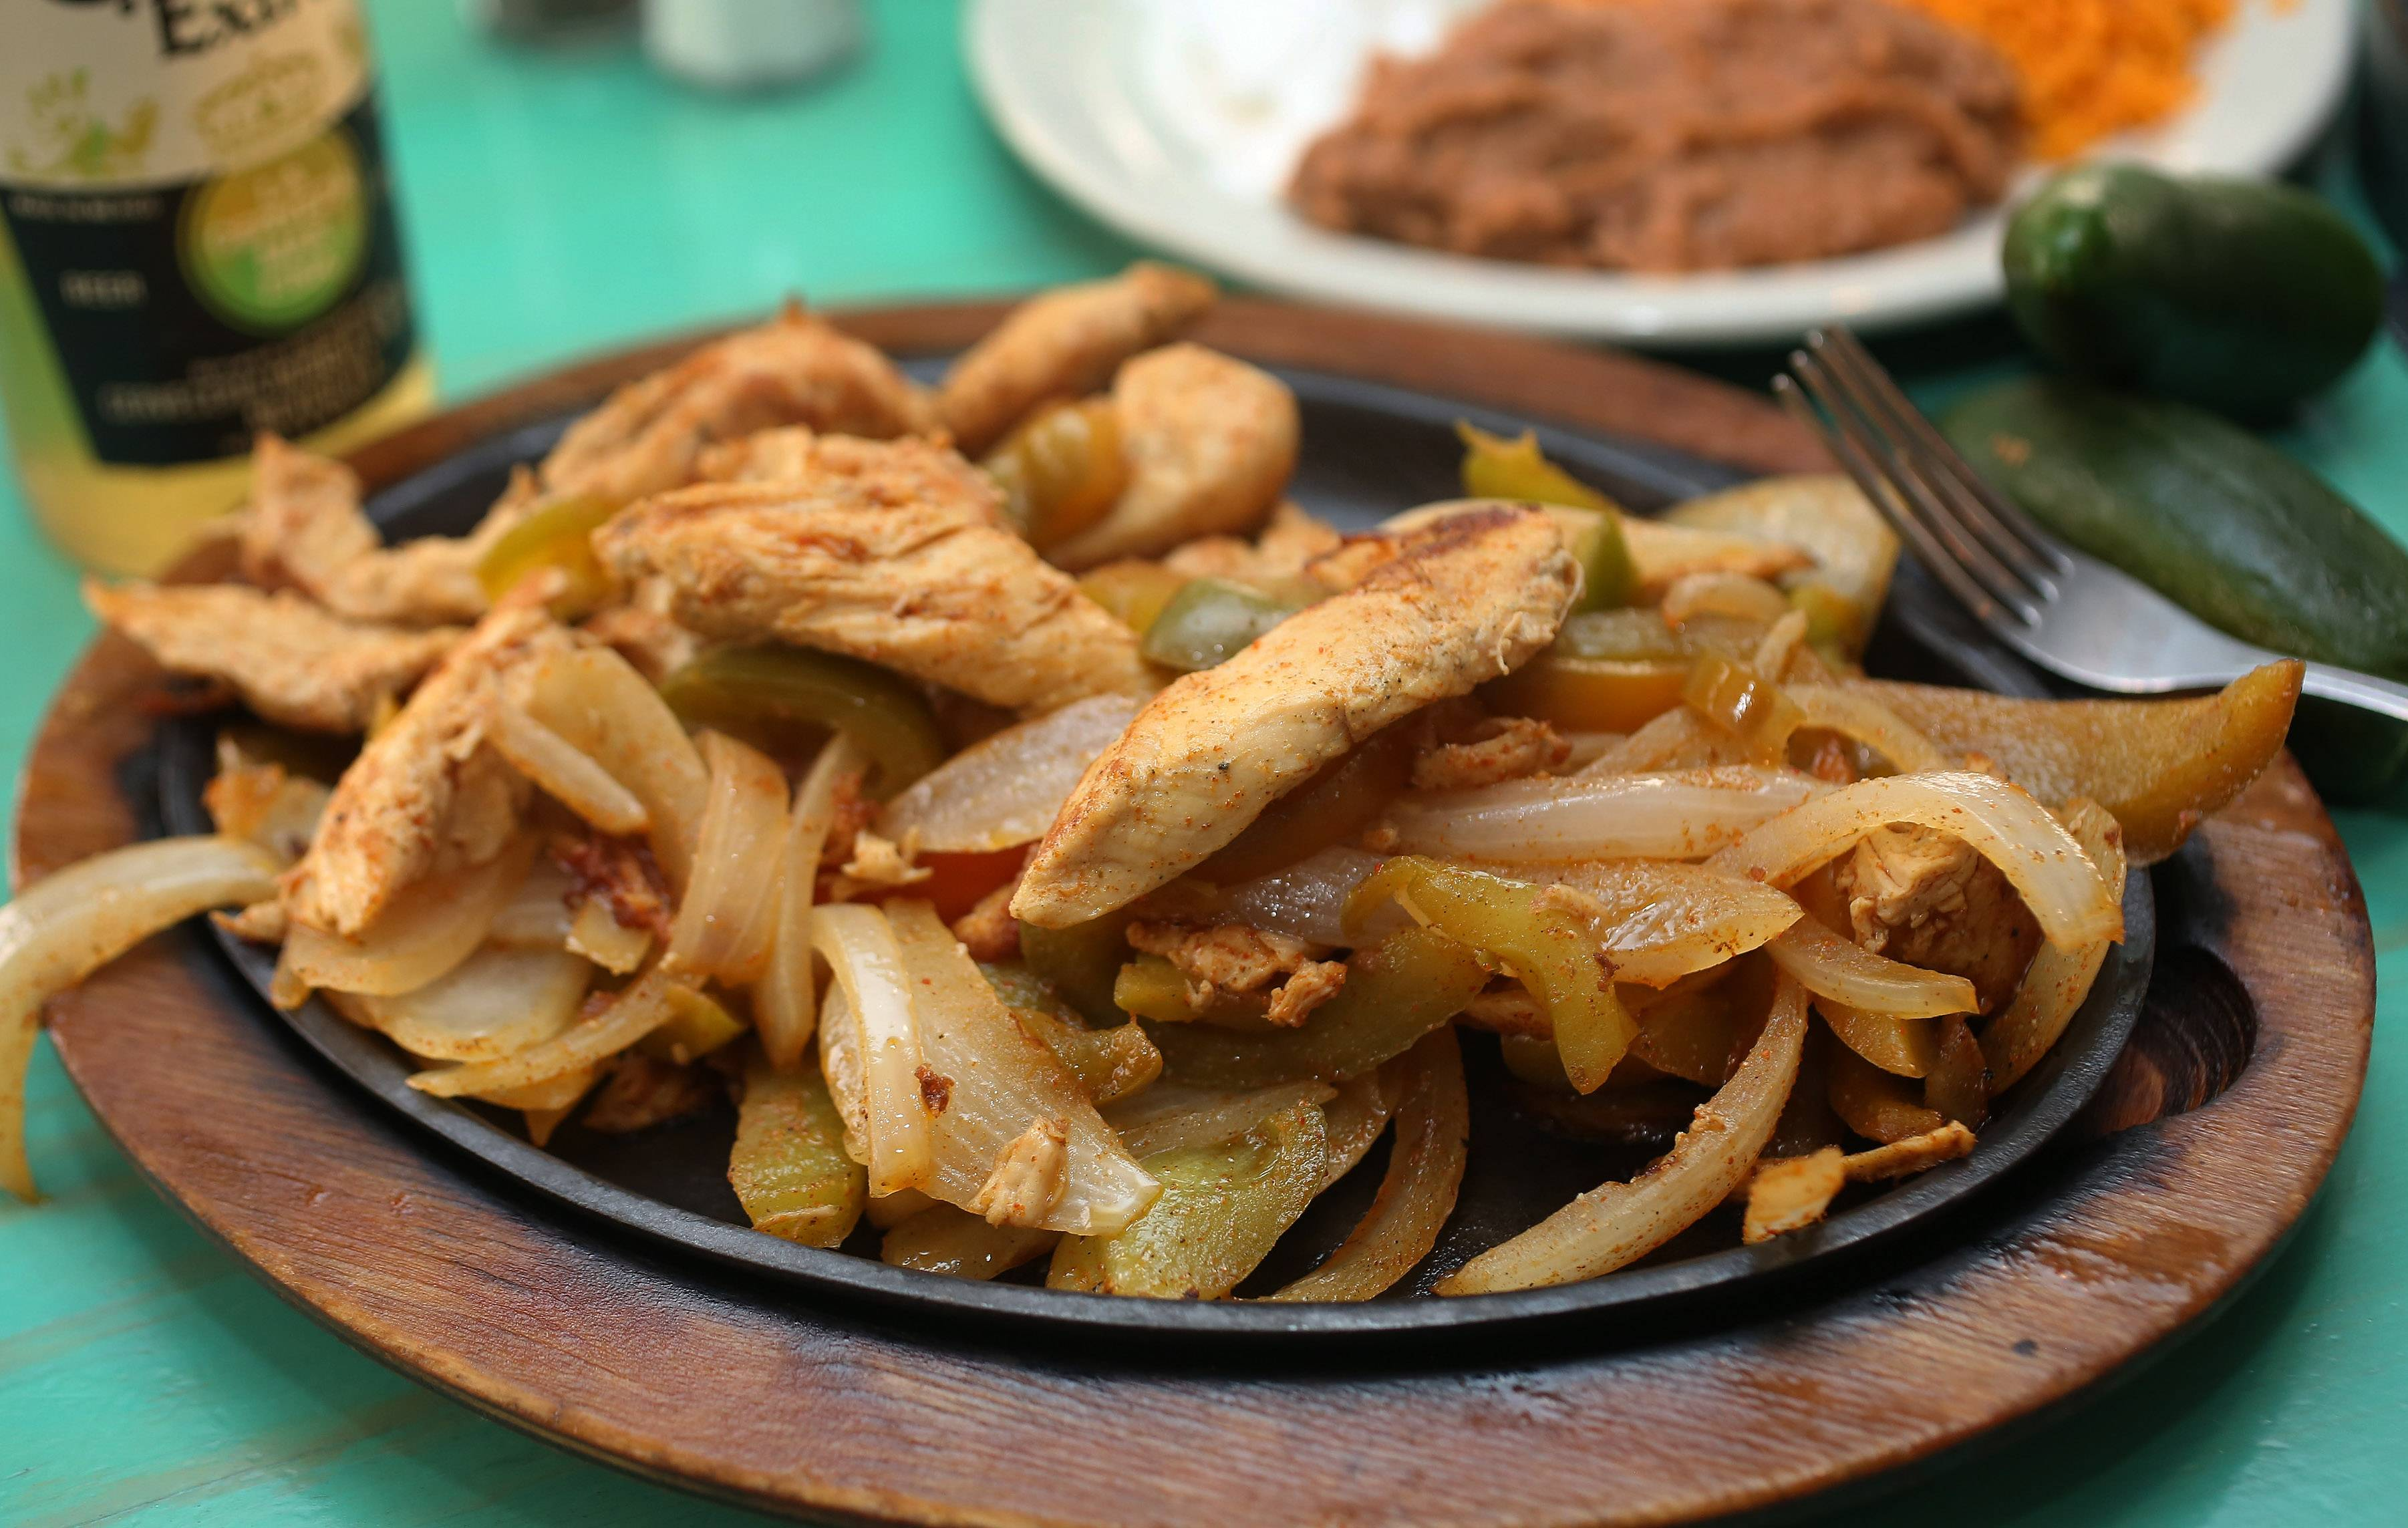 Chicken fajitas come sizzling hot at El Puerto in Fox Lake. Ask for additional tortillas right away, as the meat and vegetable portion is generous.